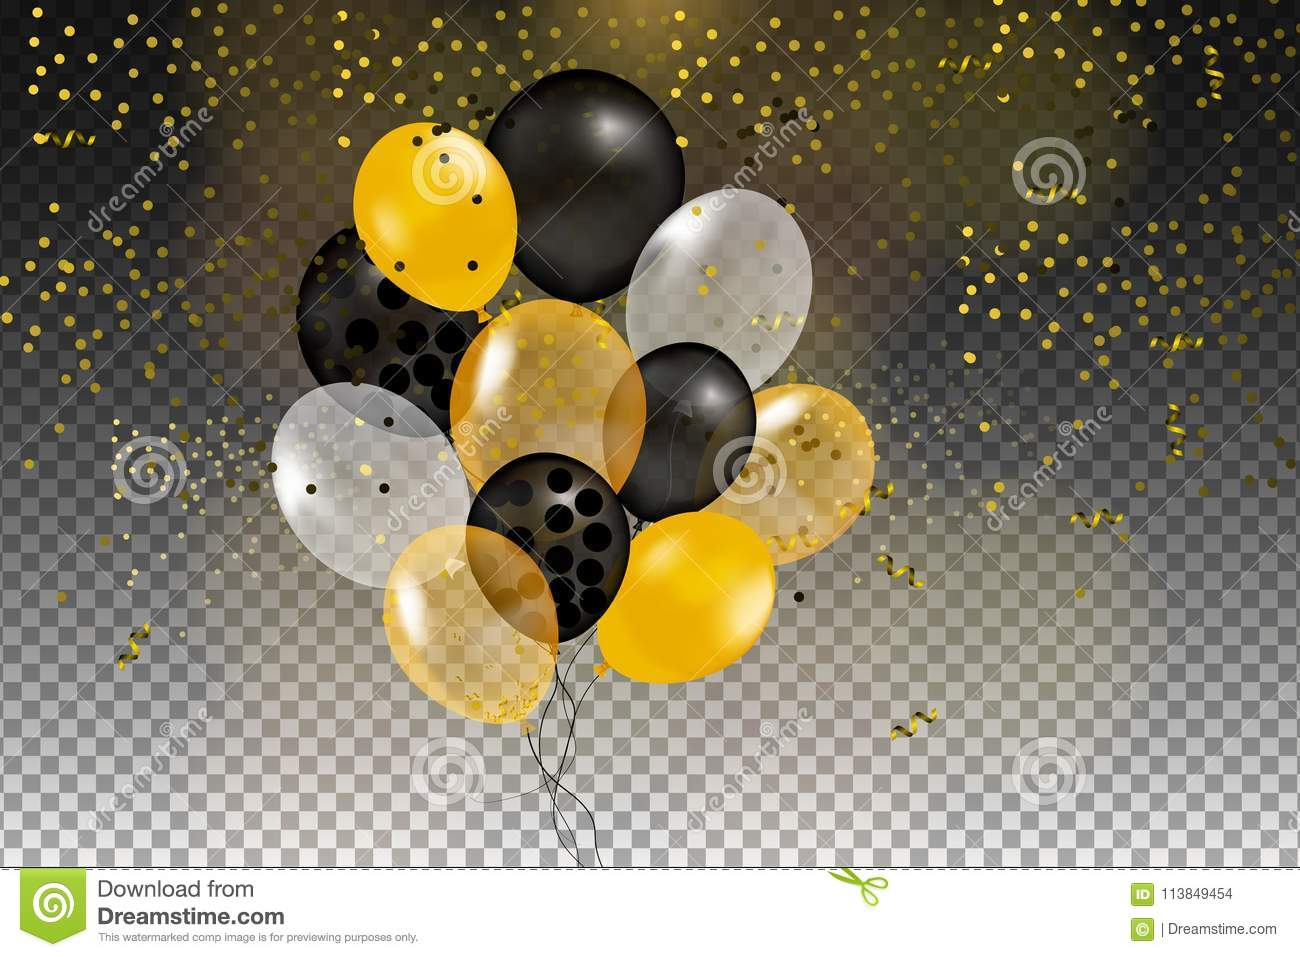 Set of gold, black, yellow, white helium ball isolated in the air